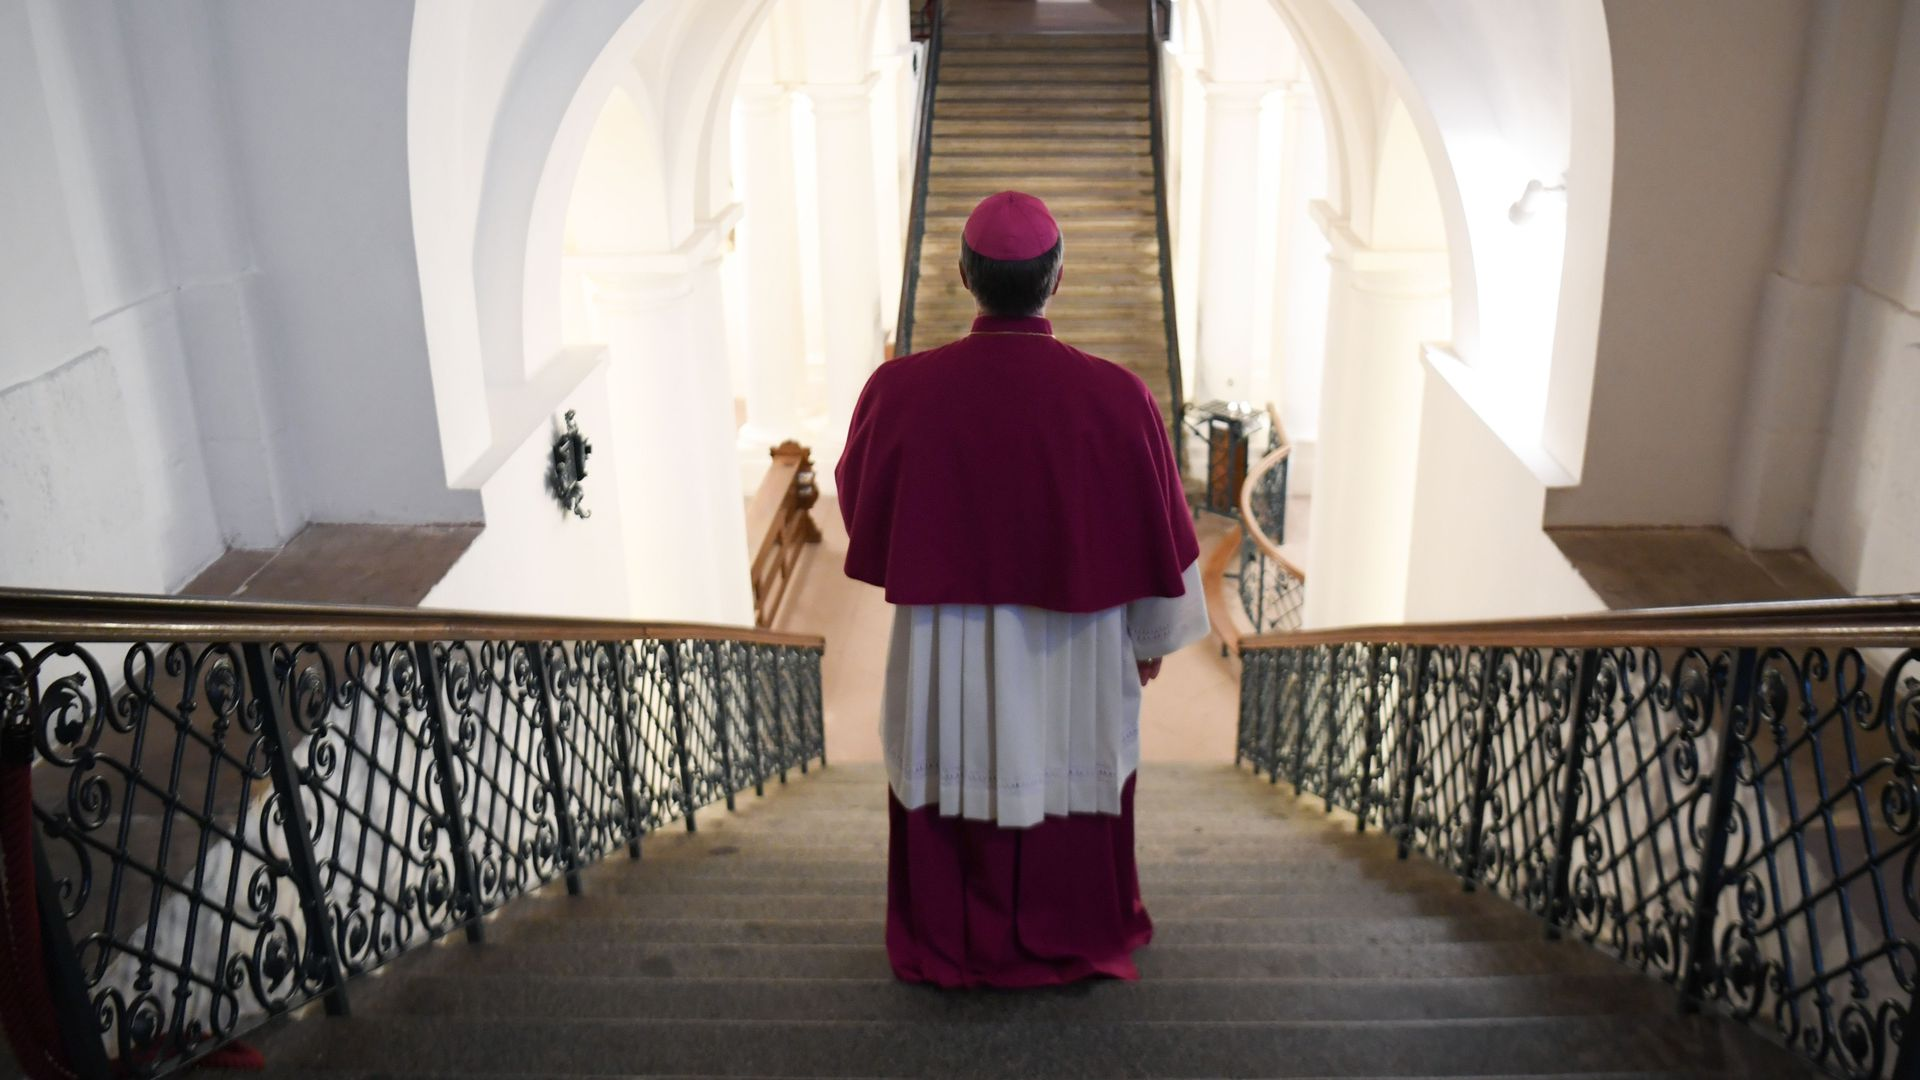 A German bishop is seen from behind.